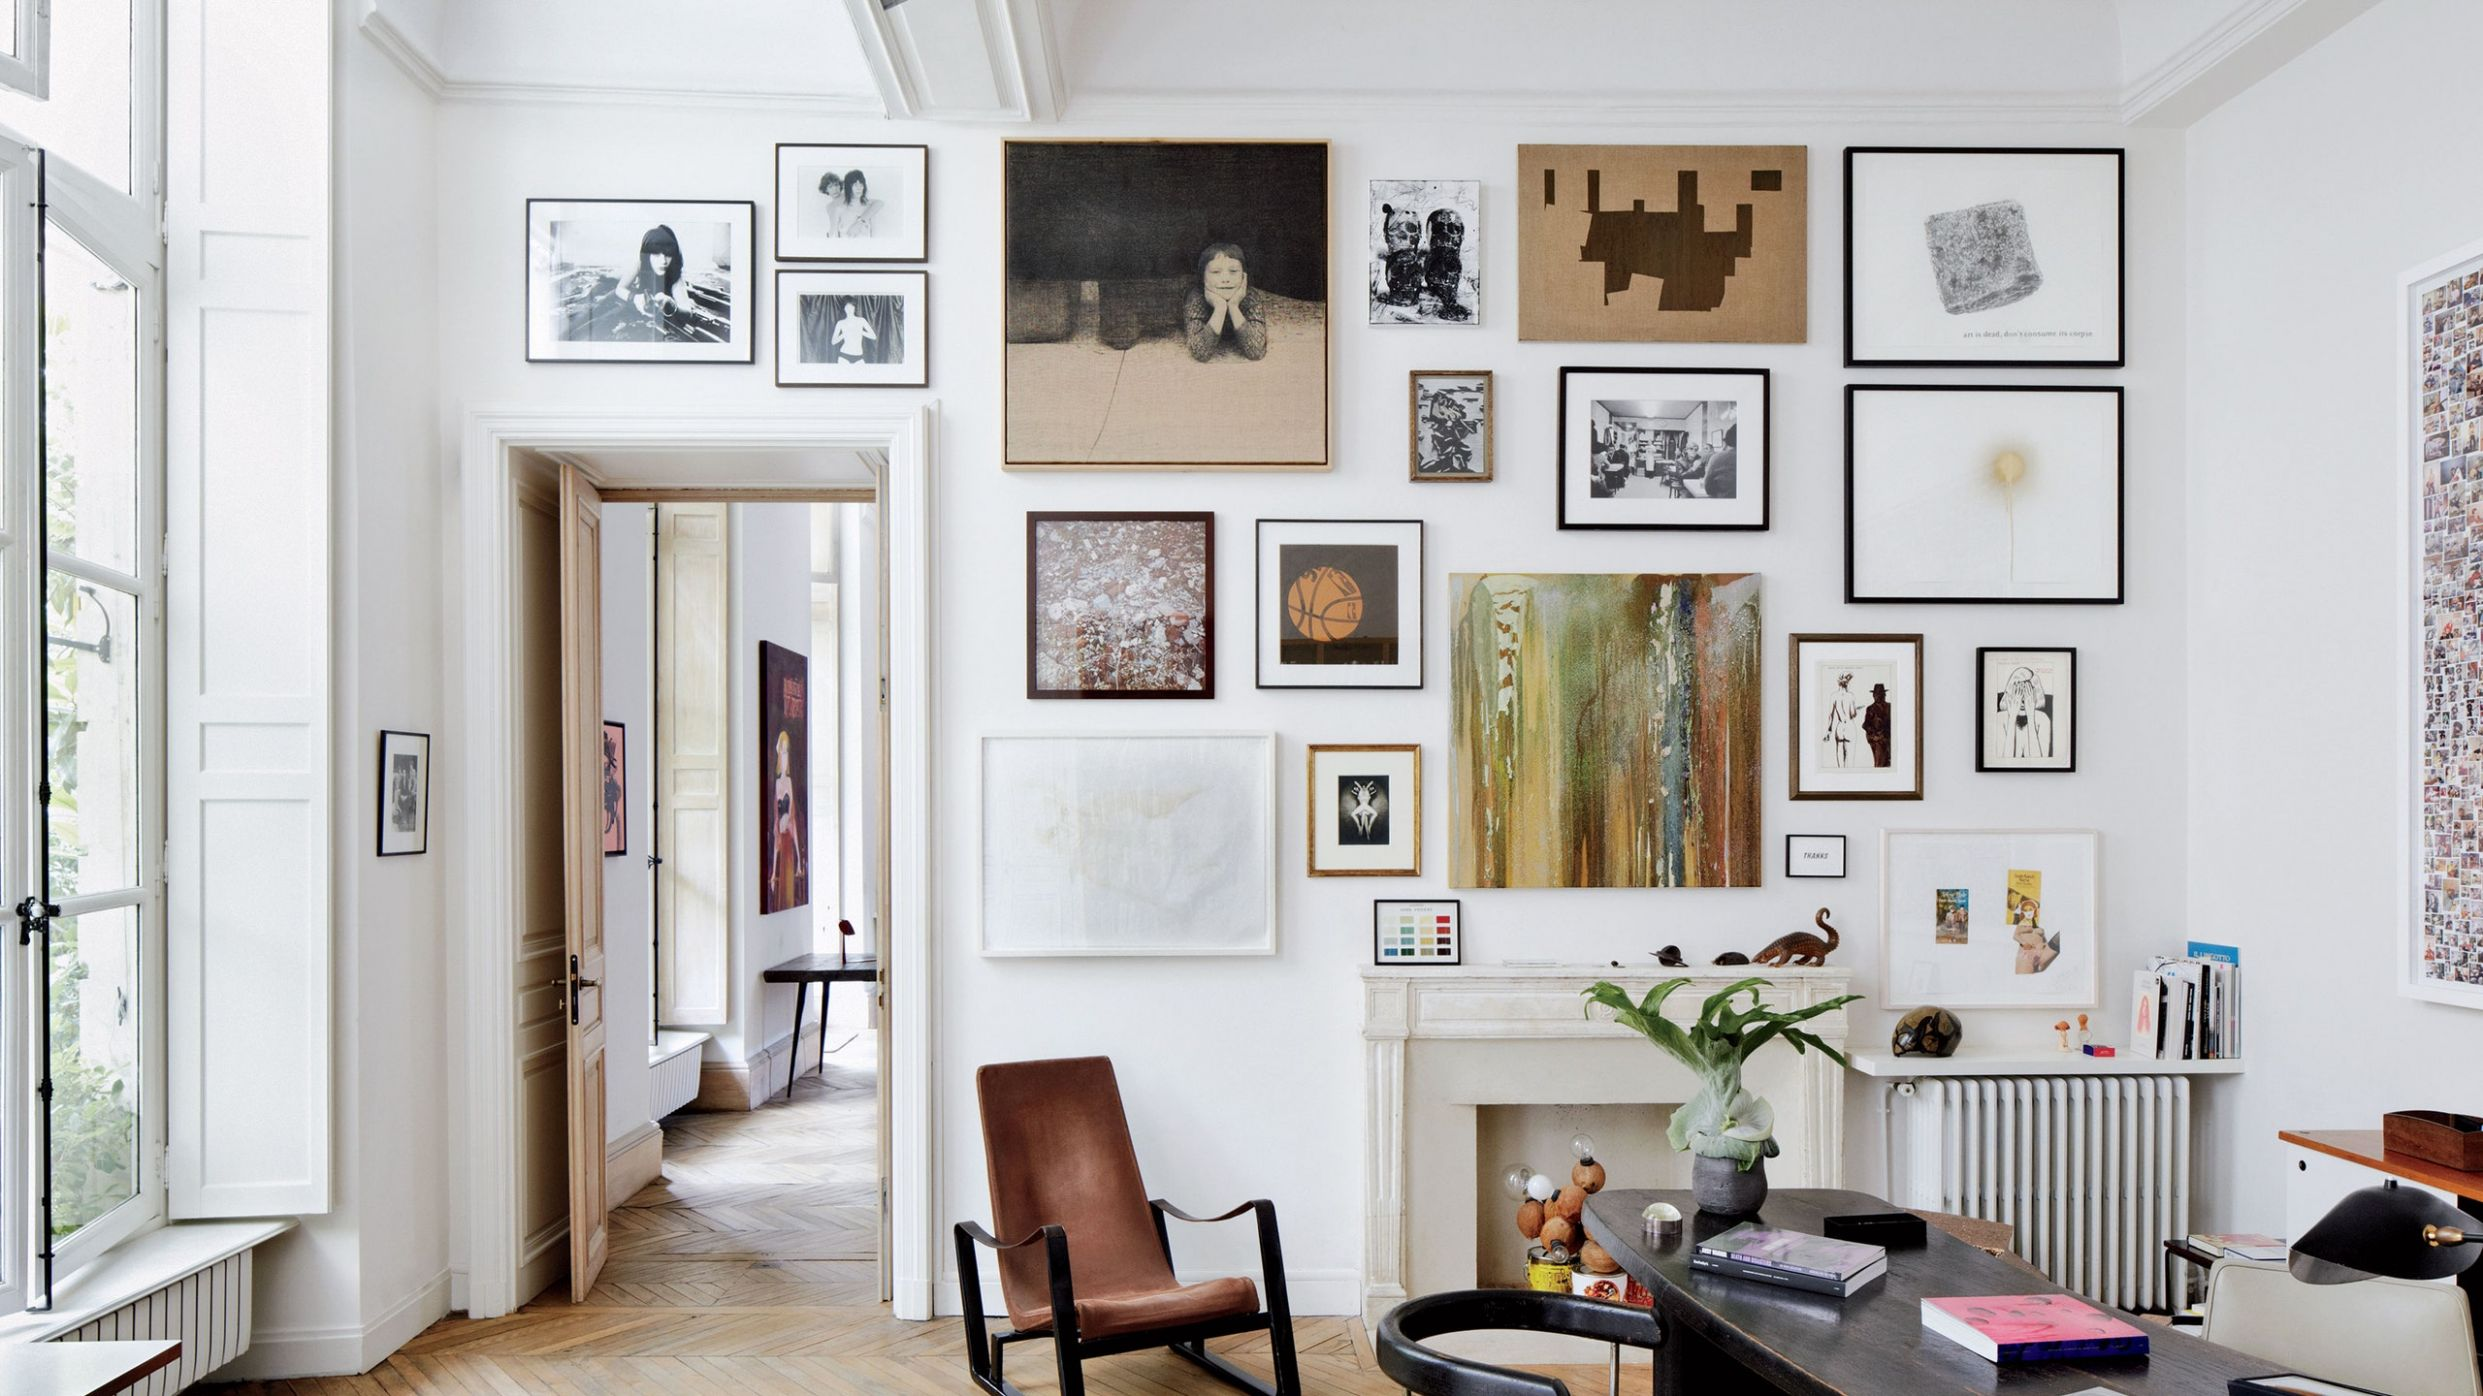 10 Wall Decor Ideas to Refresh Your Space | Architectural Digest